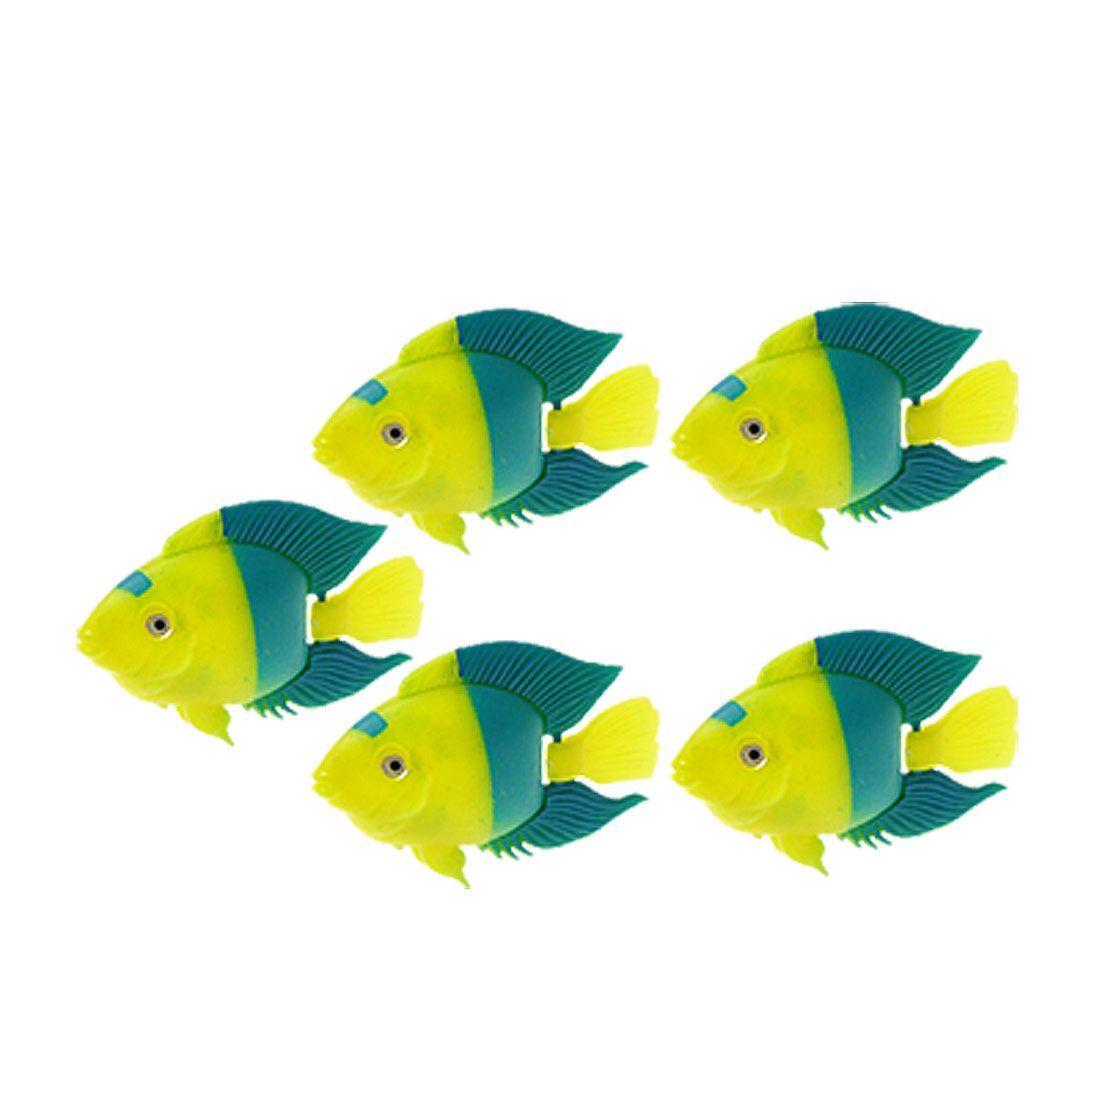 5 Pieces Life-Like Plastic Floating Ornamental Fish Aquarium Ornament